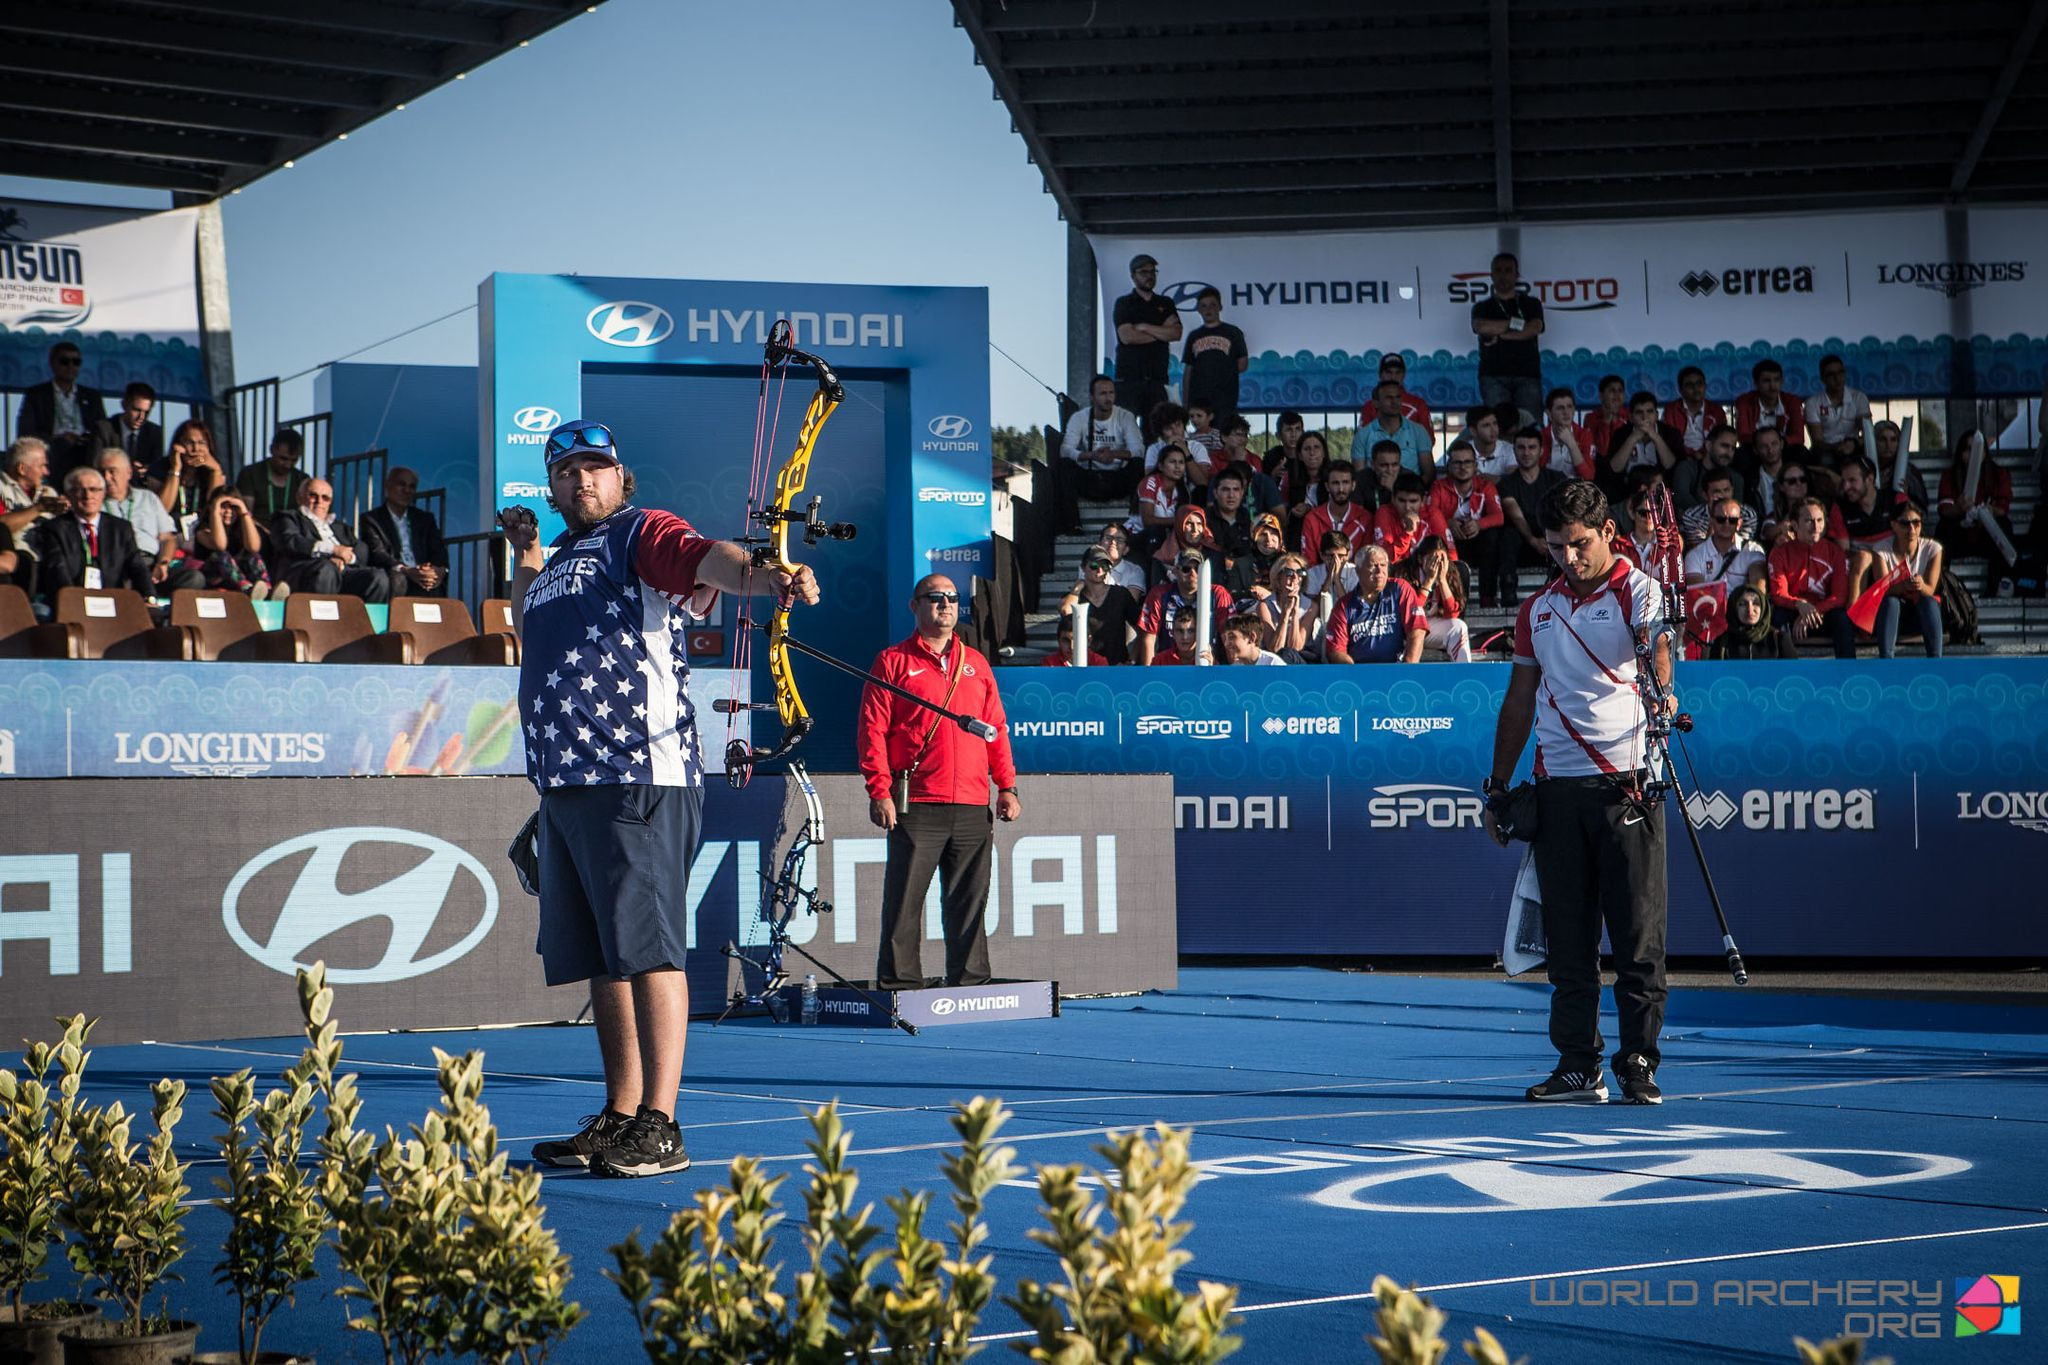 Kris Schaff of the United States beat home archer Demir Elmaagacli to gold in the men's compound at the Archery World Cup final in Samsun, Turkey ©World Archery